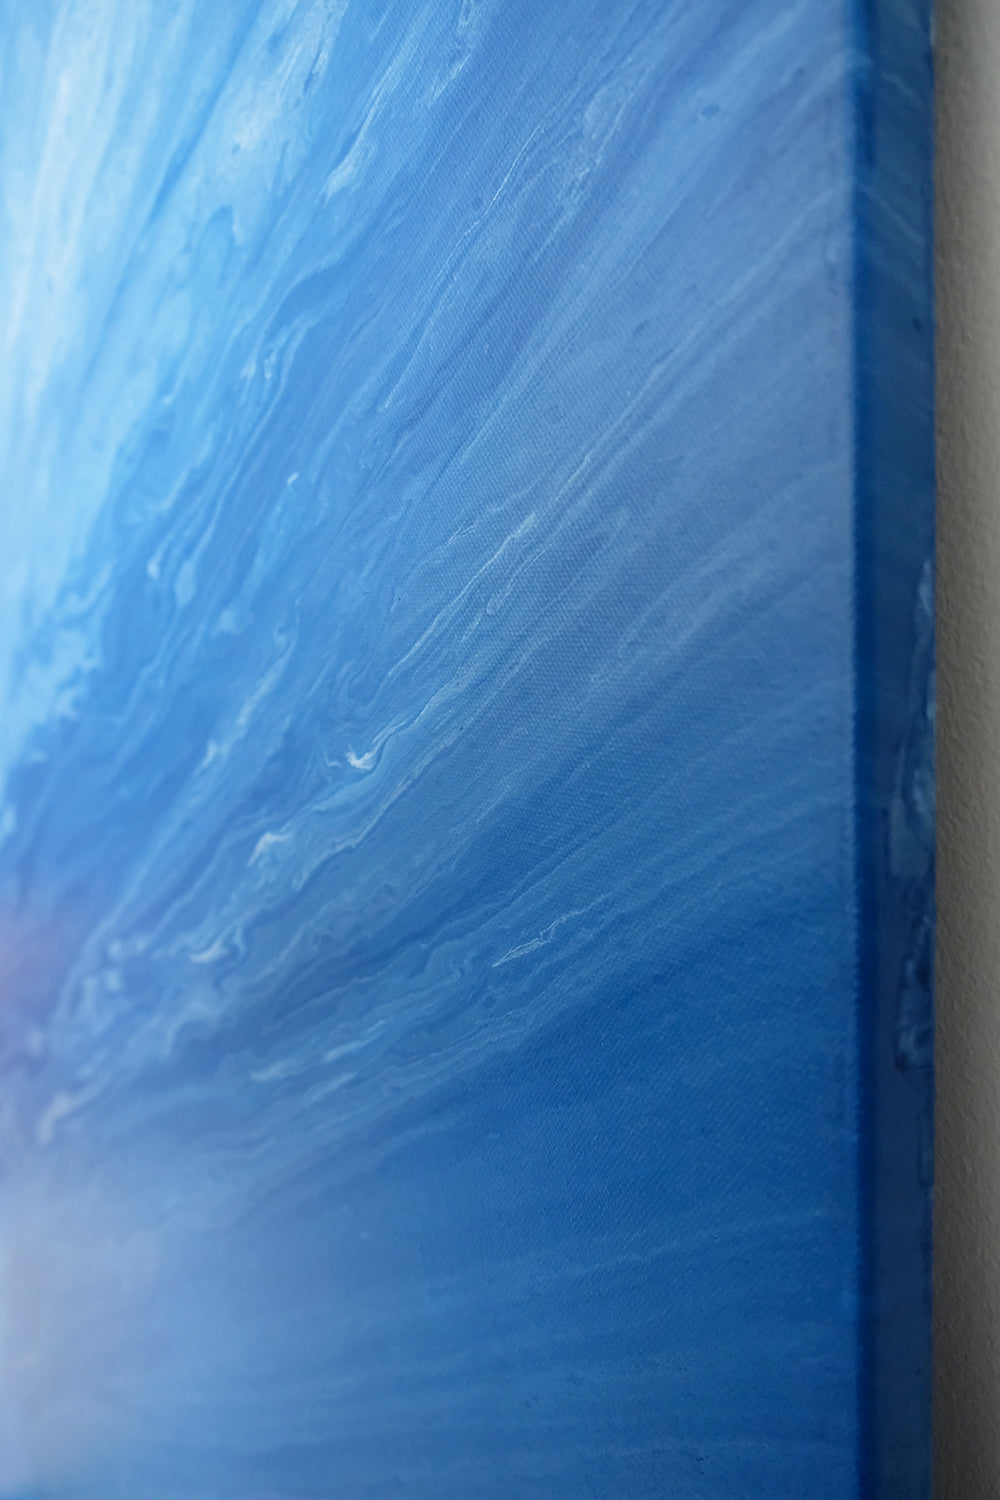 Ocean IV Abstract Acrylic Painting - Original Painting 30 x 40 inches